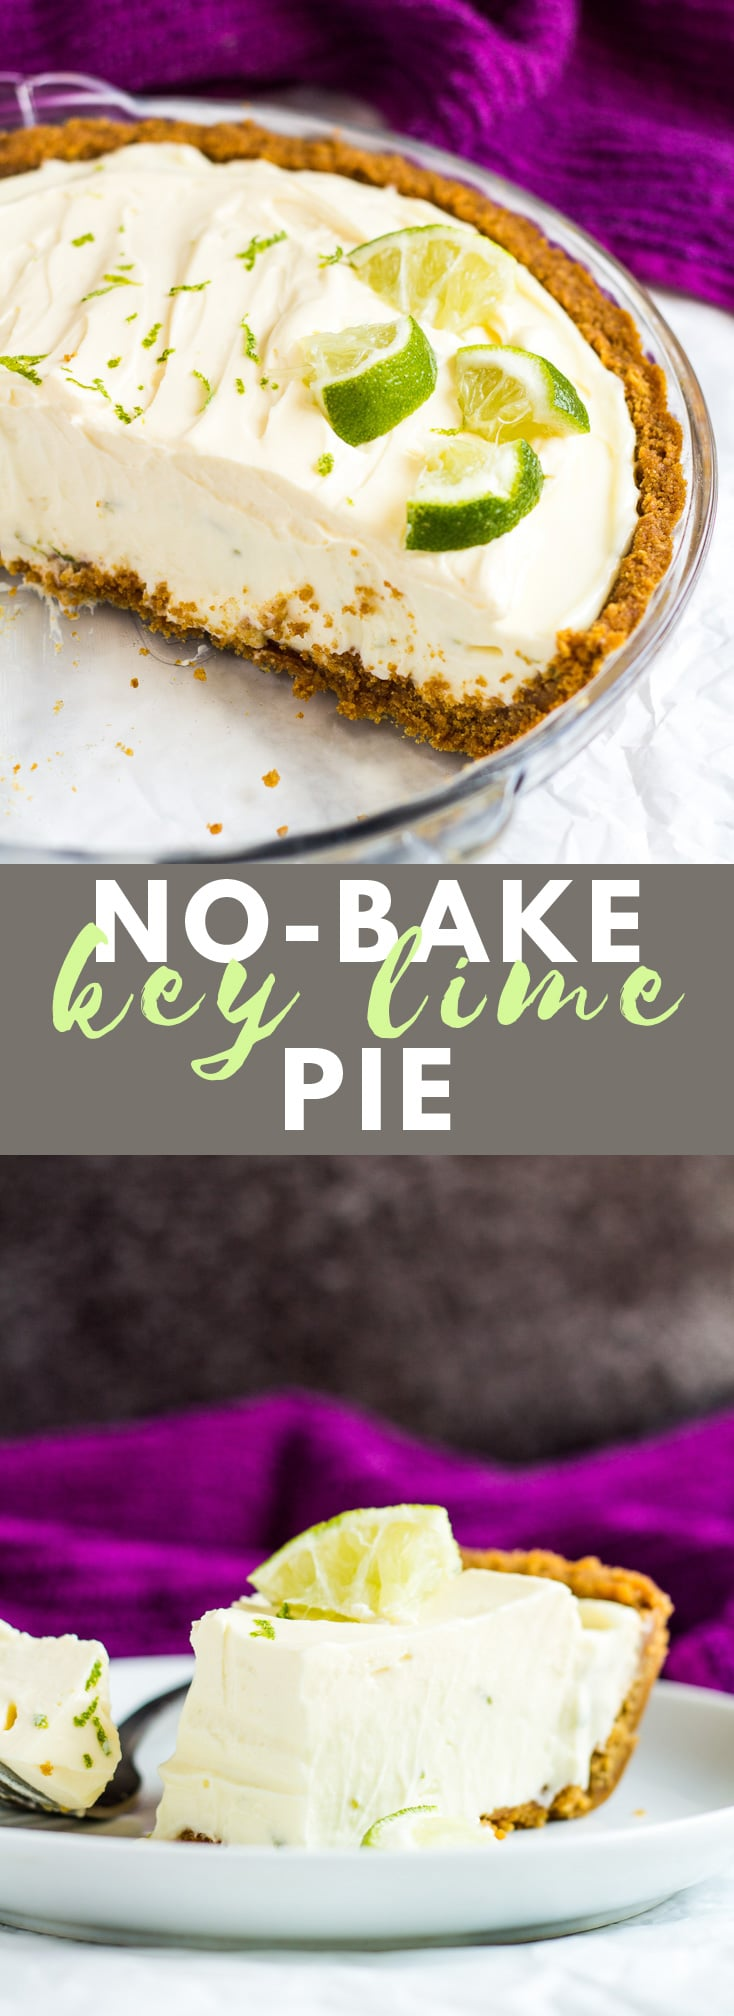 No-Bake Key Lime Pie - A deliciously creamy key lime pie with a crunchy ginger crust is a match made in heaven. Top with fresh whipped cream and lime slices for the ultimate refreshing Summer dessert! #nobake #keylimepie #pierecipes